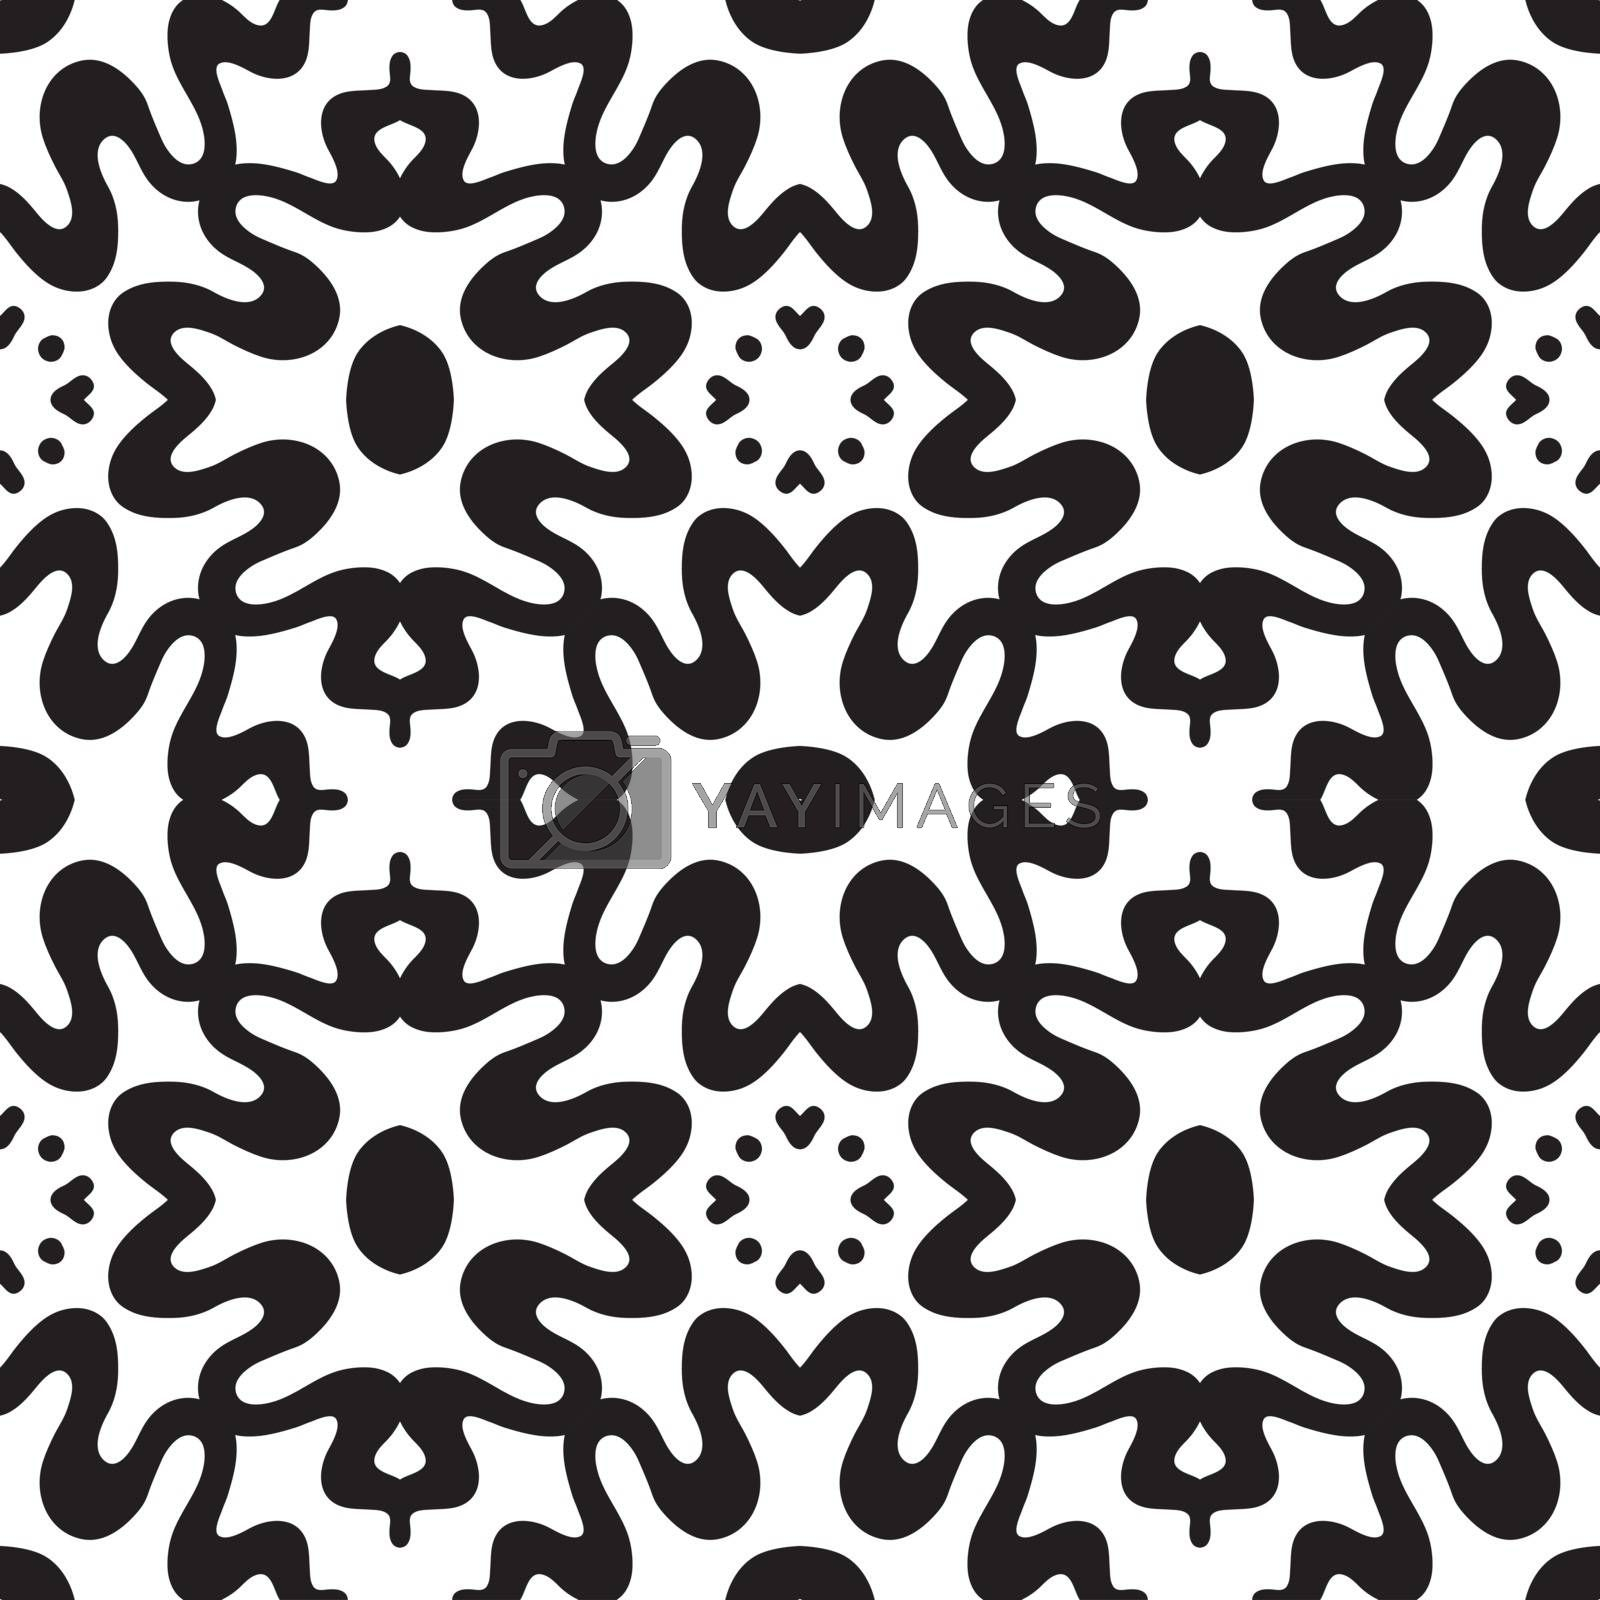 Abstract geometric seamless pattern square, lines, heart, flowers. Symmetry black and white background